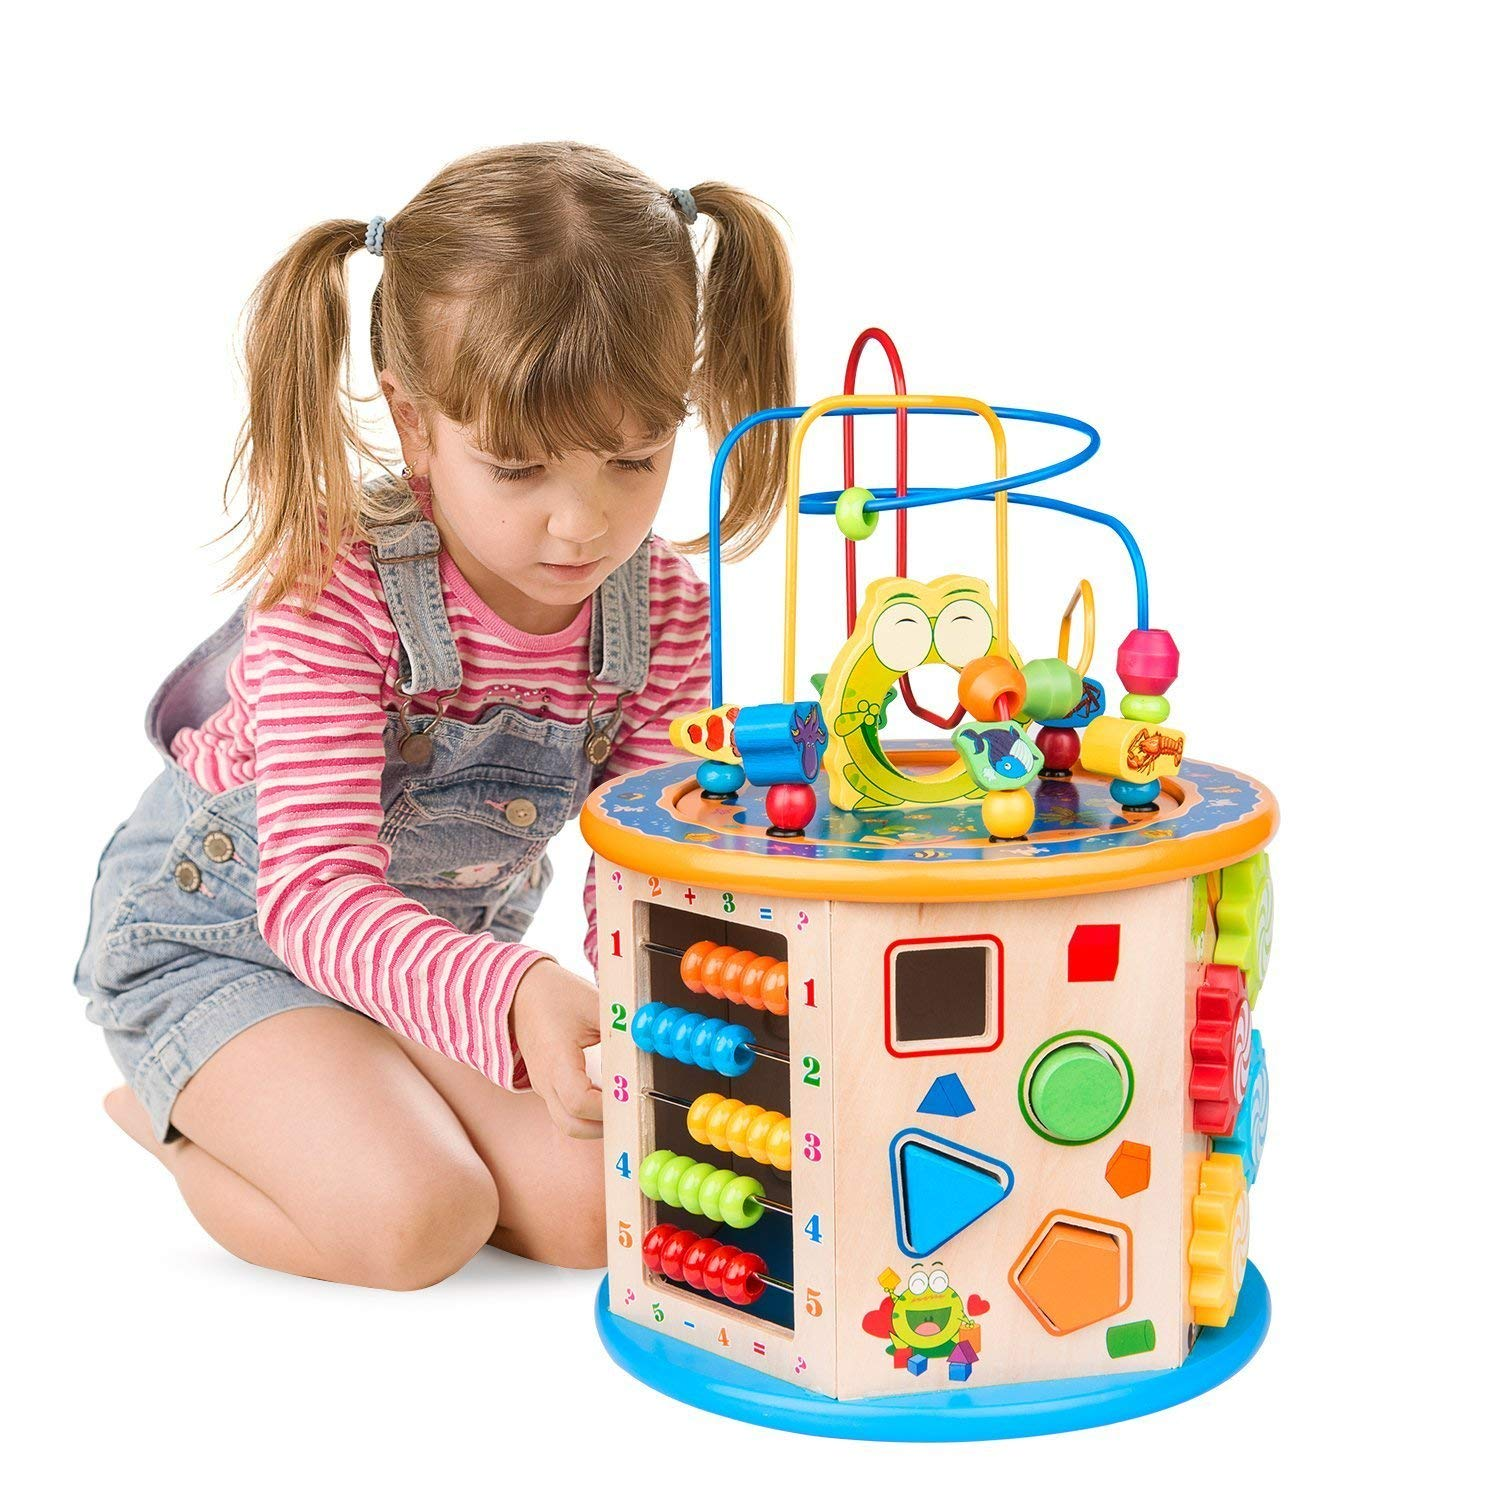 50 Best Educational Toys For 3 Year Olds Tncore